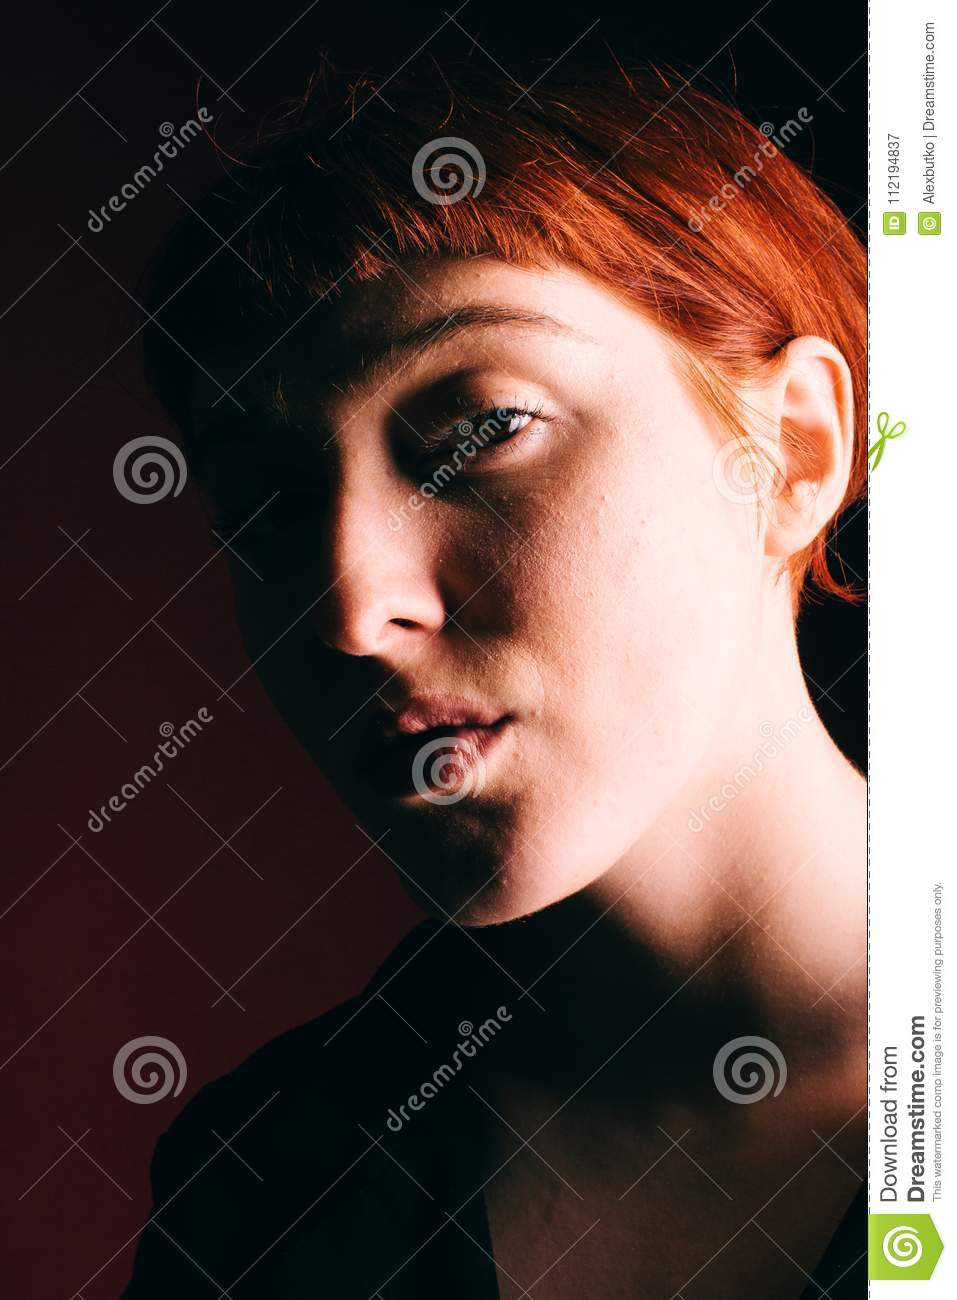 Beautiful Girl Freak With Red Hair And A Short Haircut Stock Image